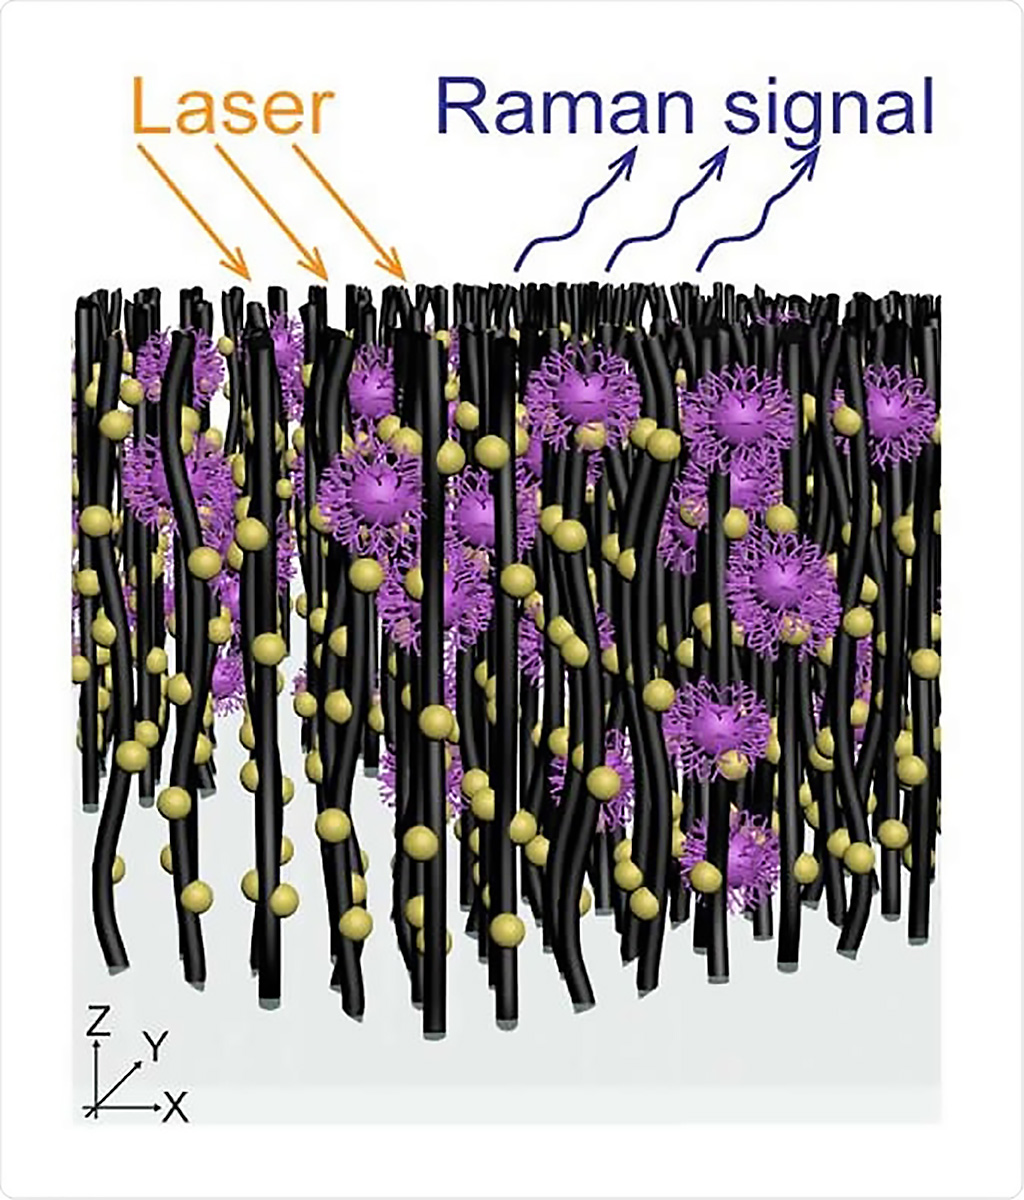 Image: Schematic of an array of nanotubes decorated with gold nanoparticles that capture virus molecules for in situ Raman spectroscopy for label-free optical virus identification (Photo courtesy of Professor Mauricio Terrones)